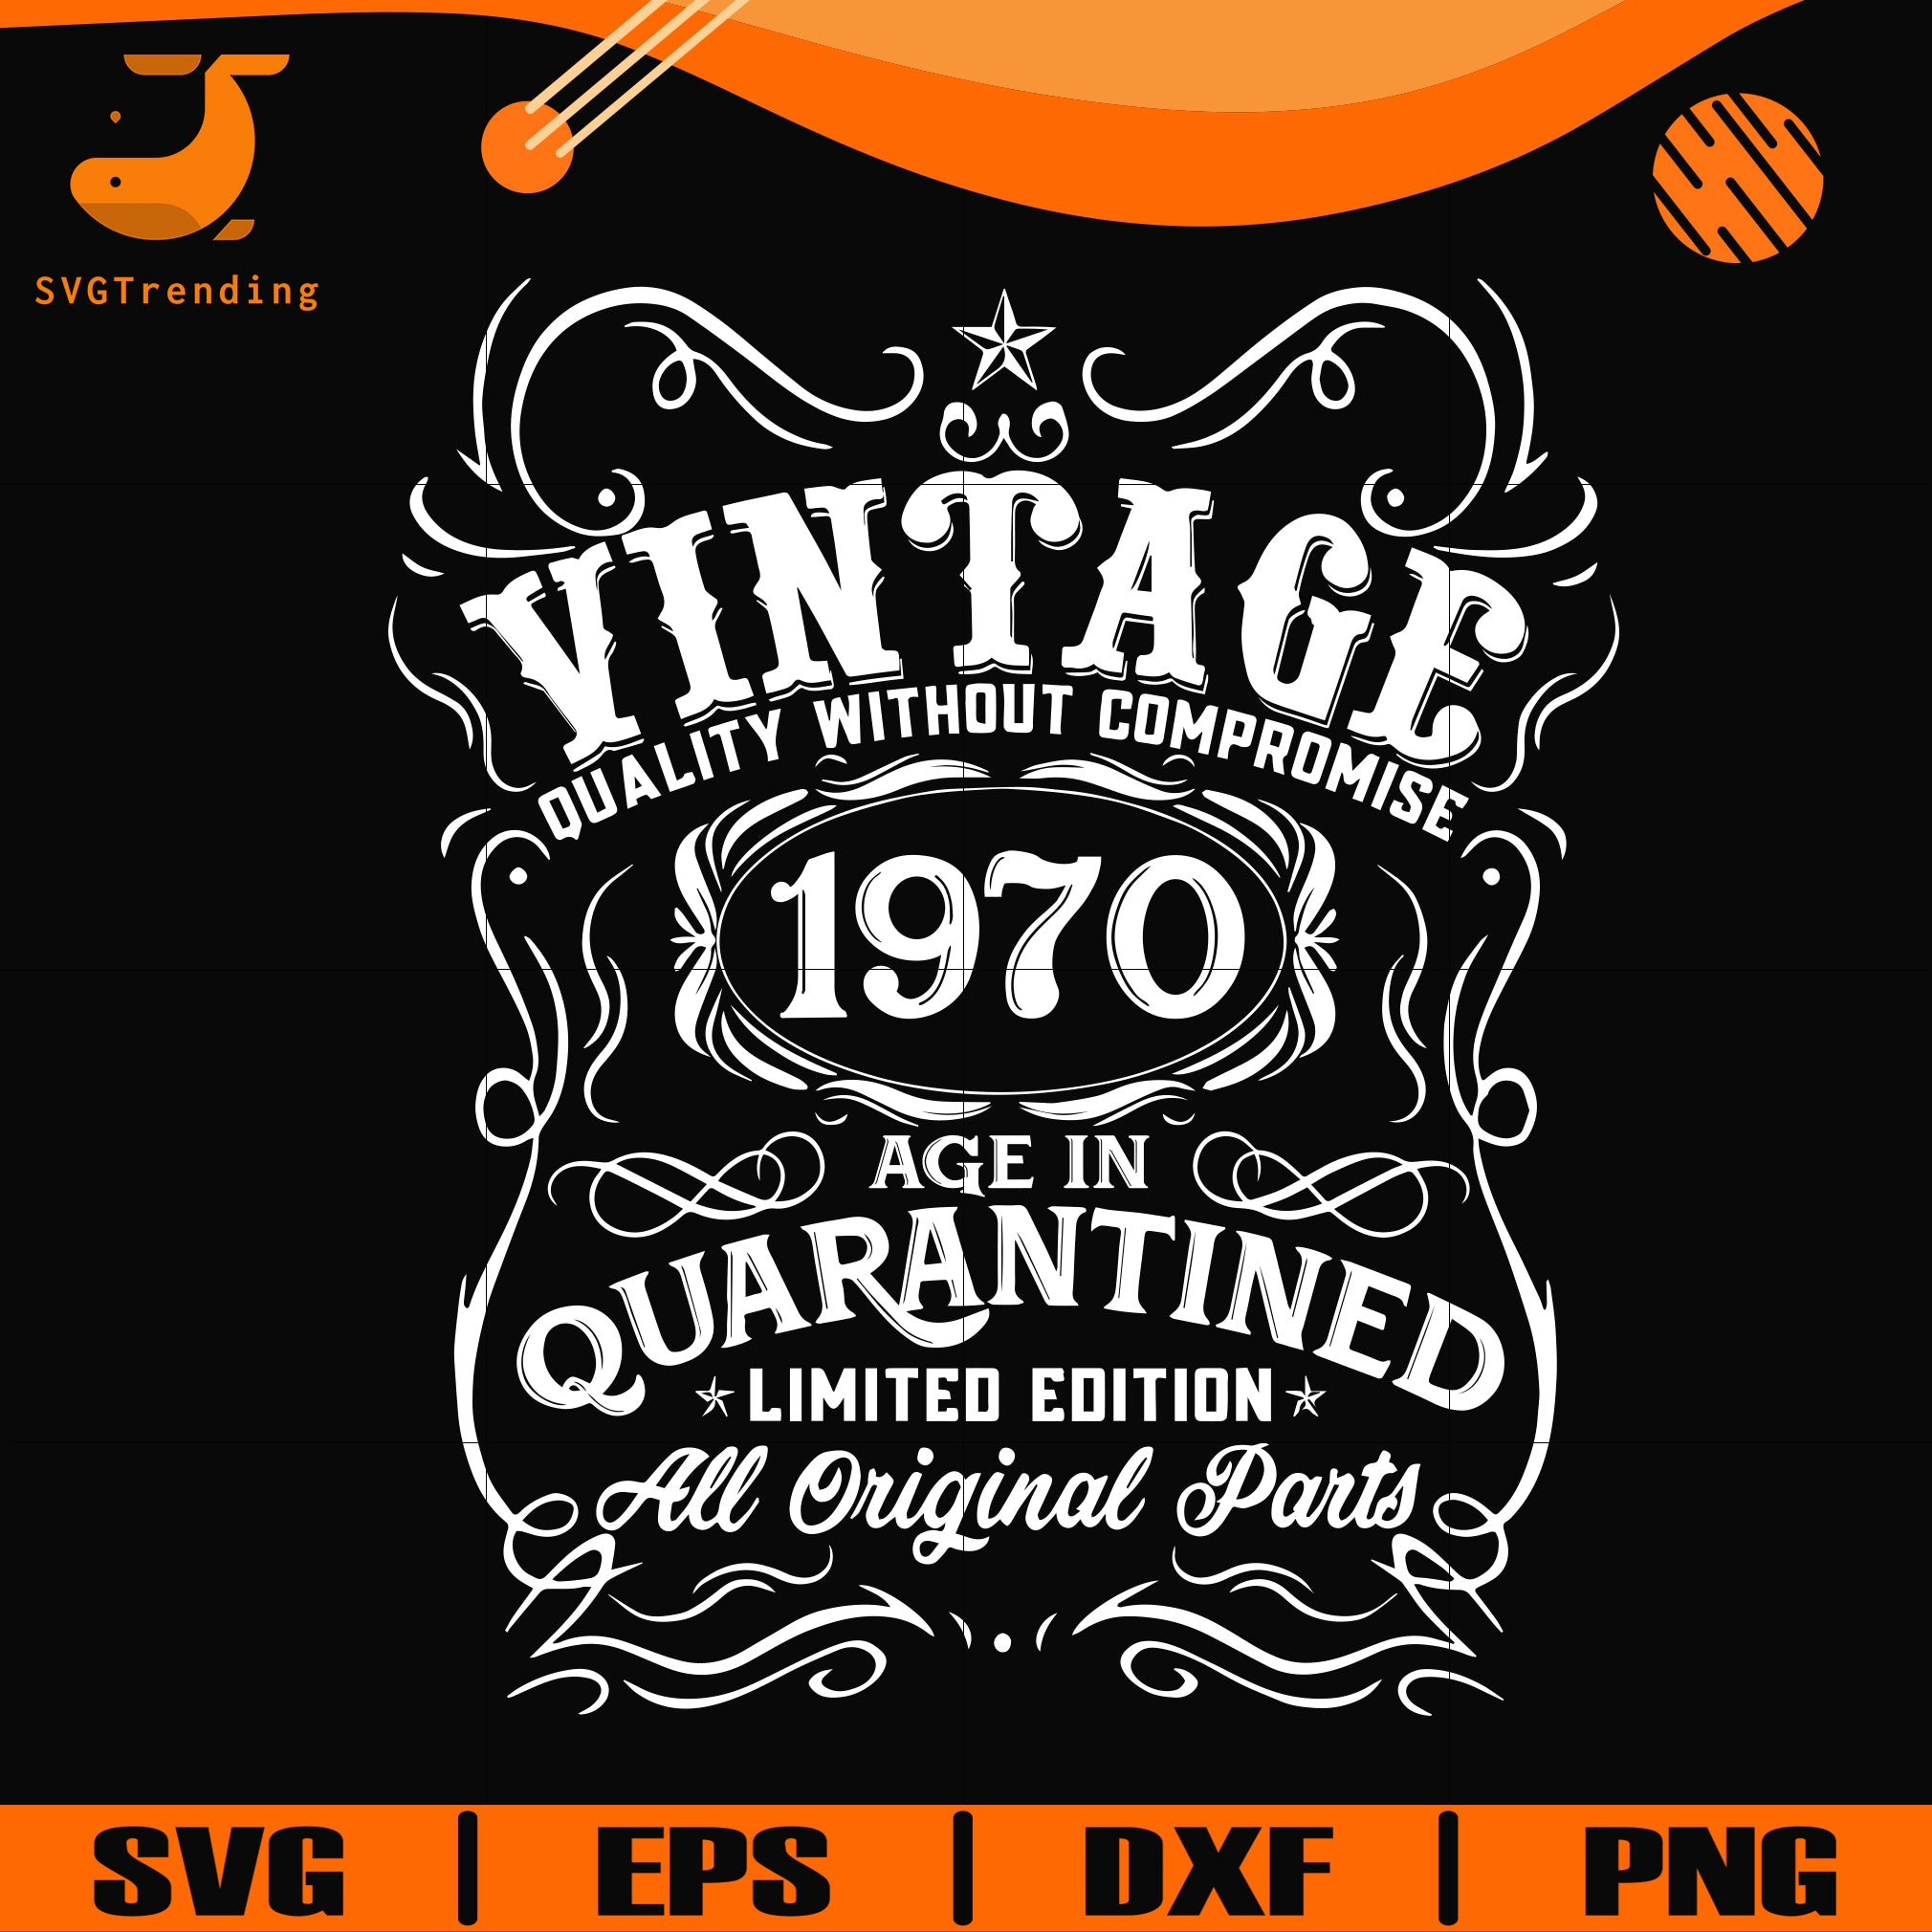 Vintage 1970 age in quarantined limited edition svg, limited edition svg, 1970 birthday svg, png, dxf, eps digital file NBD0097